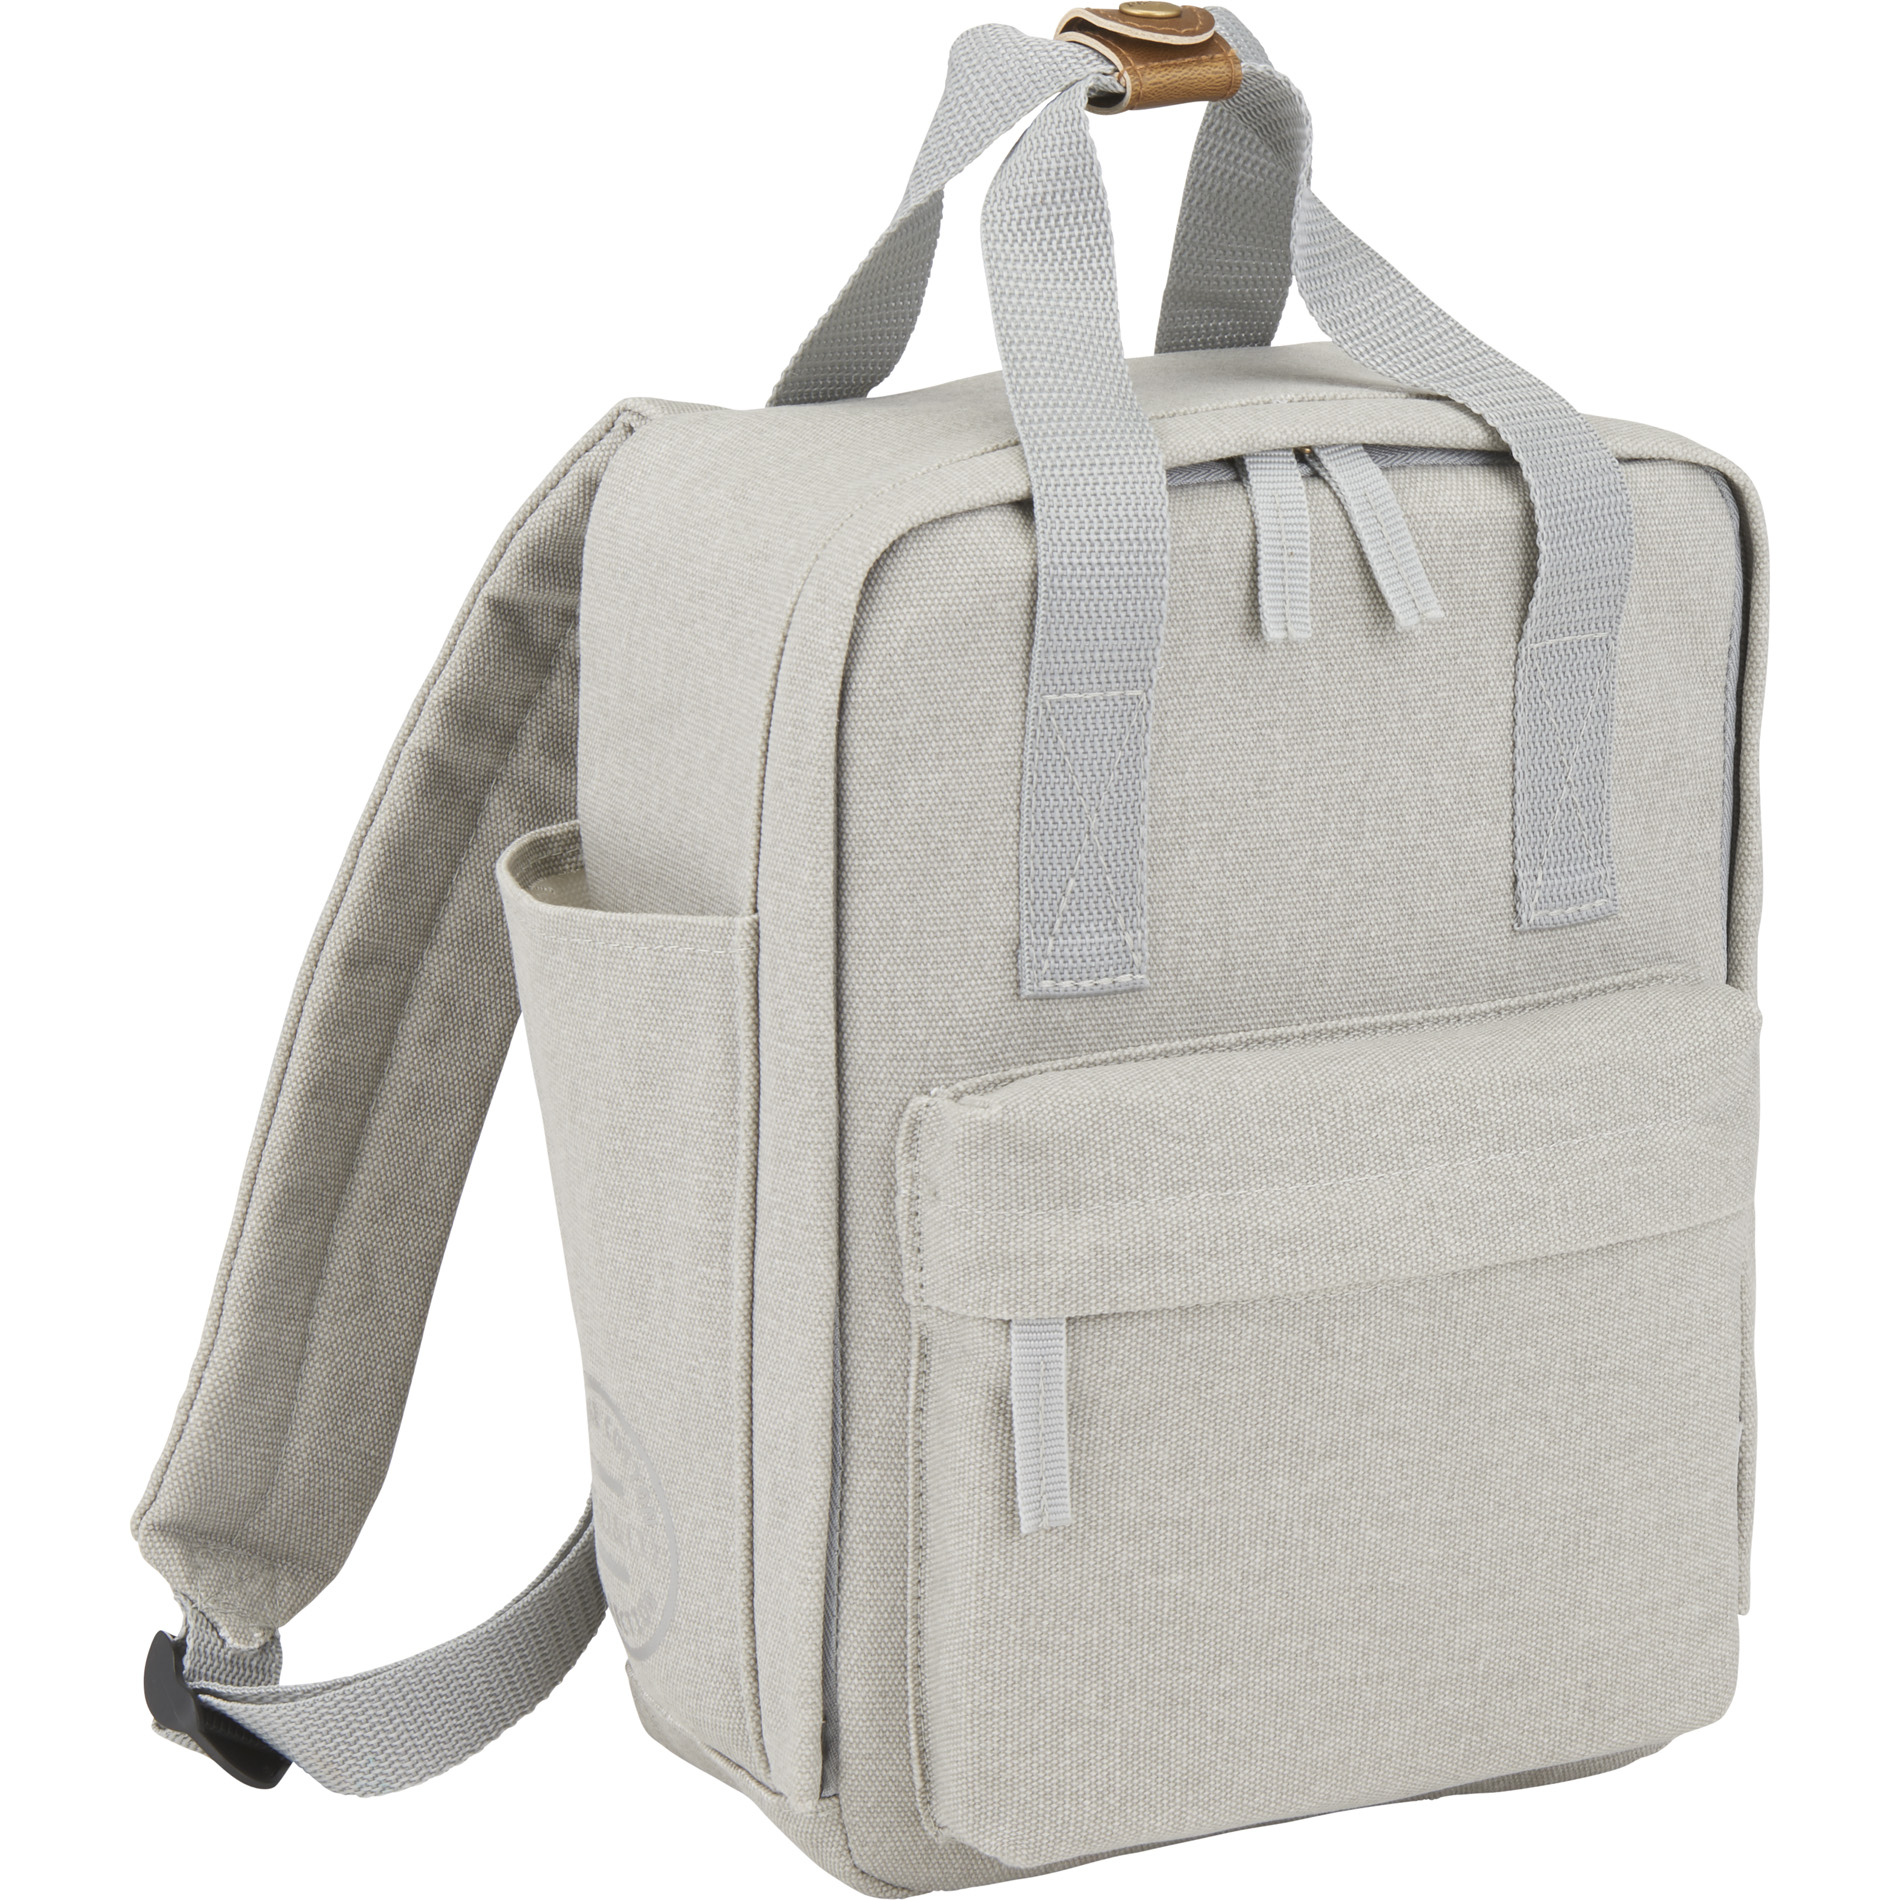 Field & Co 7950-34 - Mini Campus Backpack